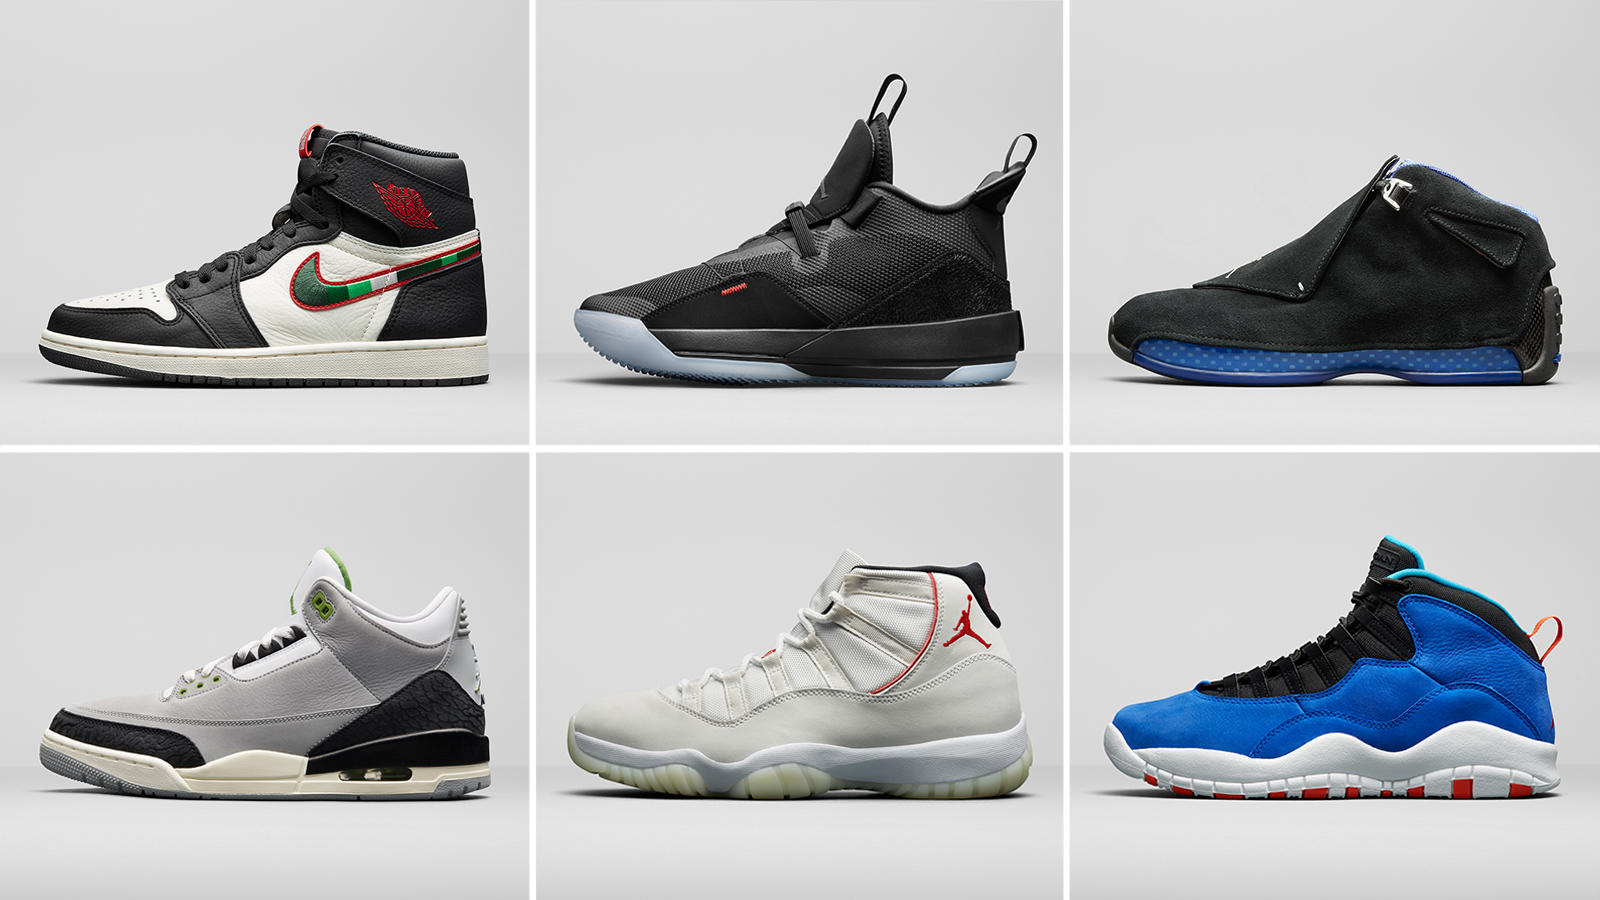 Jordan Brand 2018 Holiday Releases - Nike News